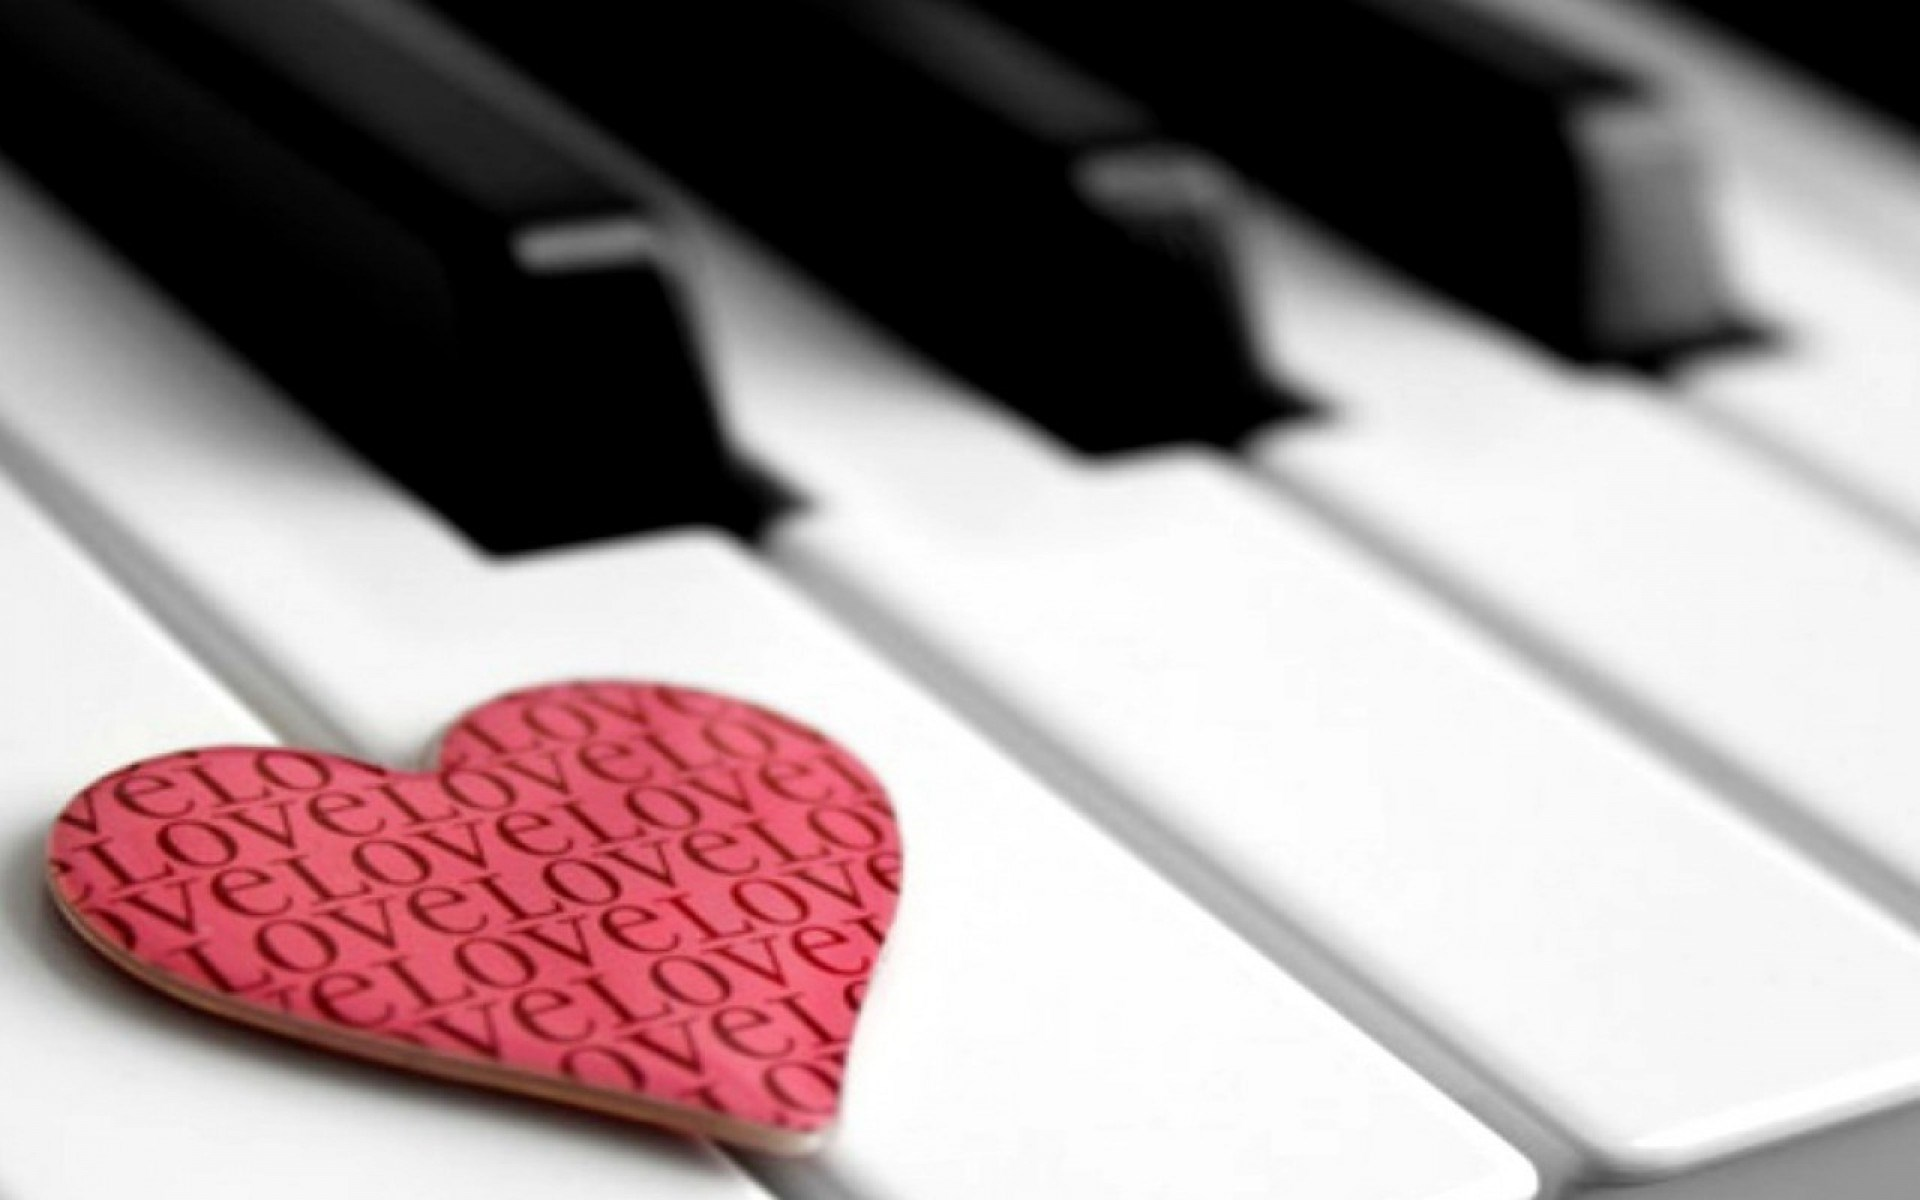 Download Piano Wallpaper Hd Backgrounds Download Itlcat